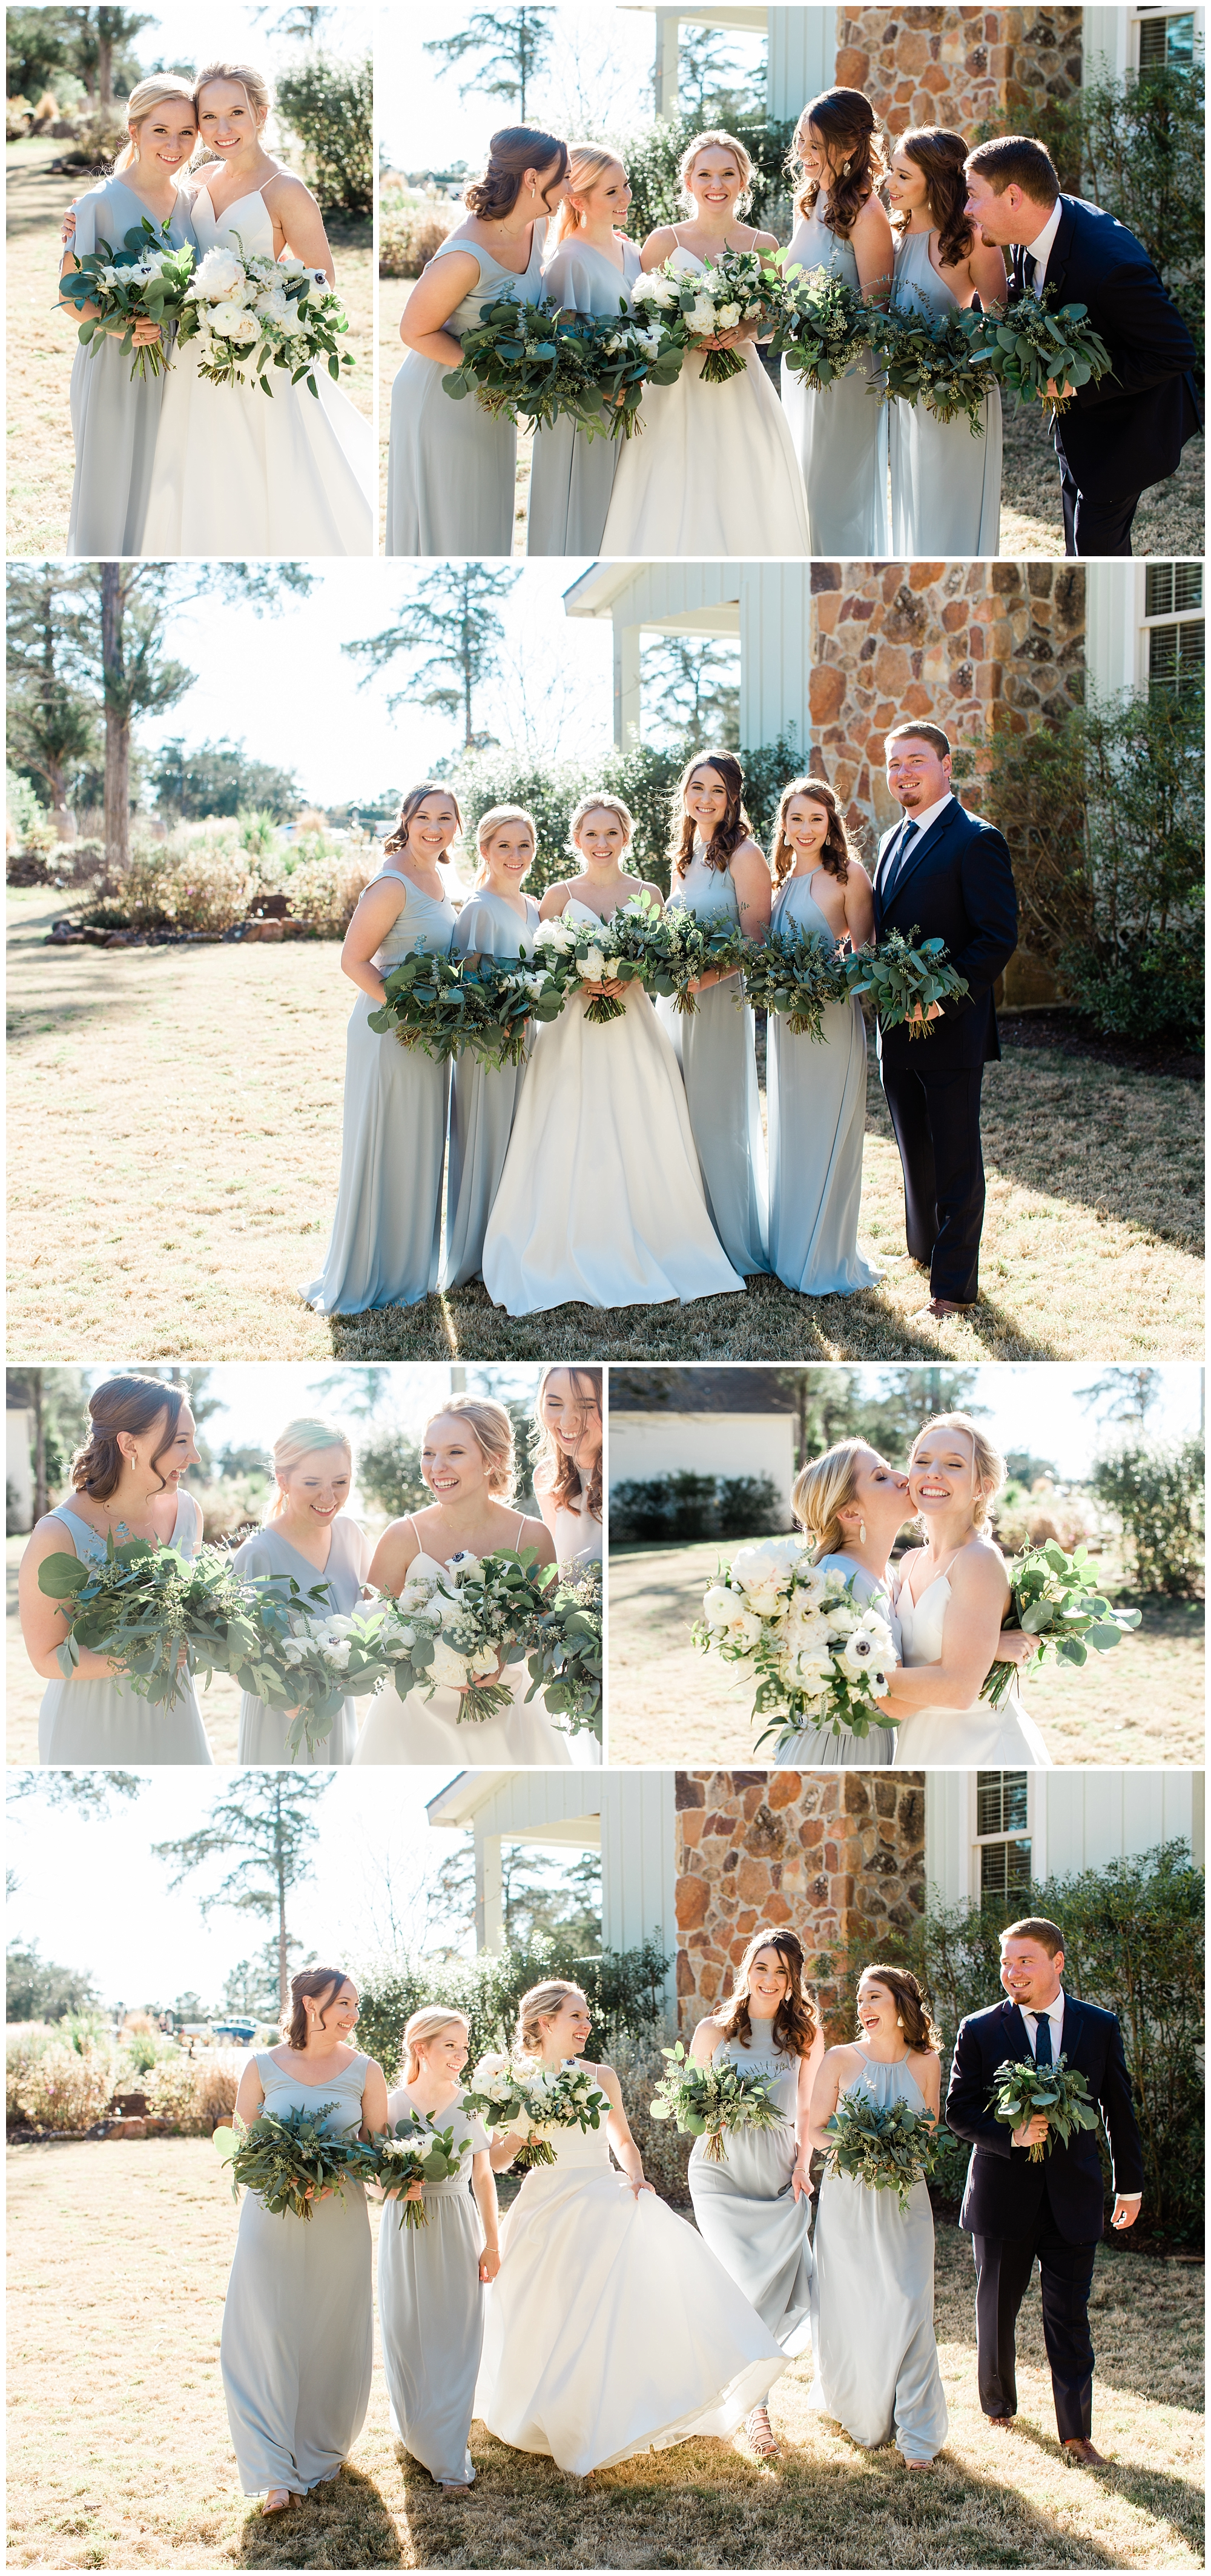 The_Vine_at_New_Ulm_Wedding_Kristina_Ross_Photography_0012.jpg